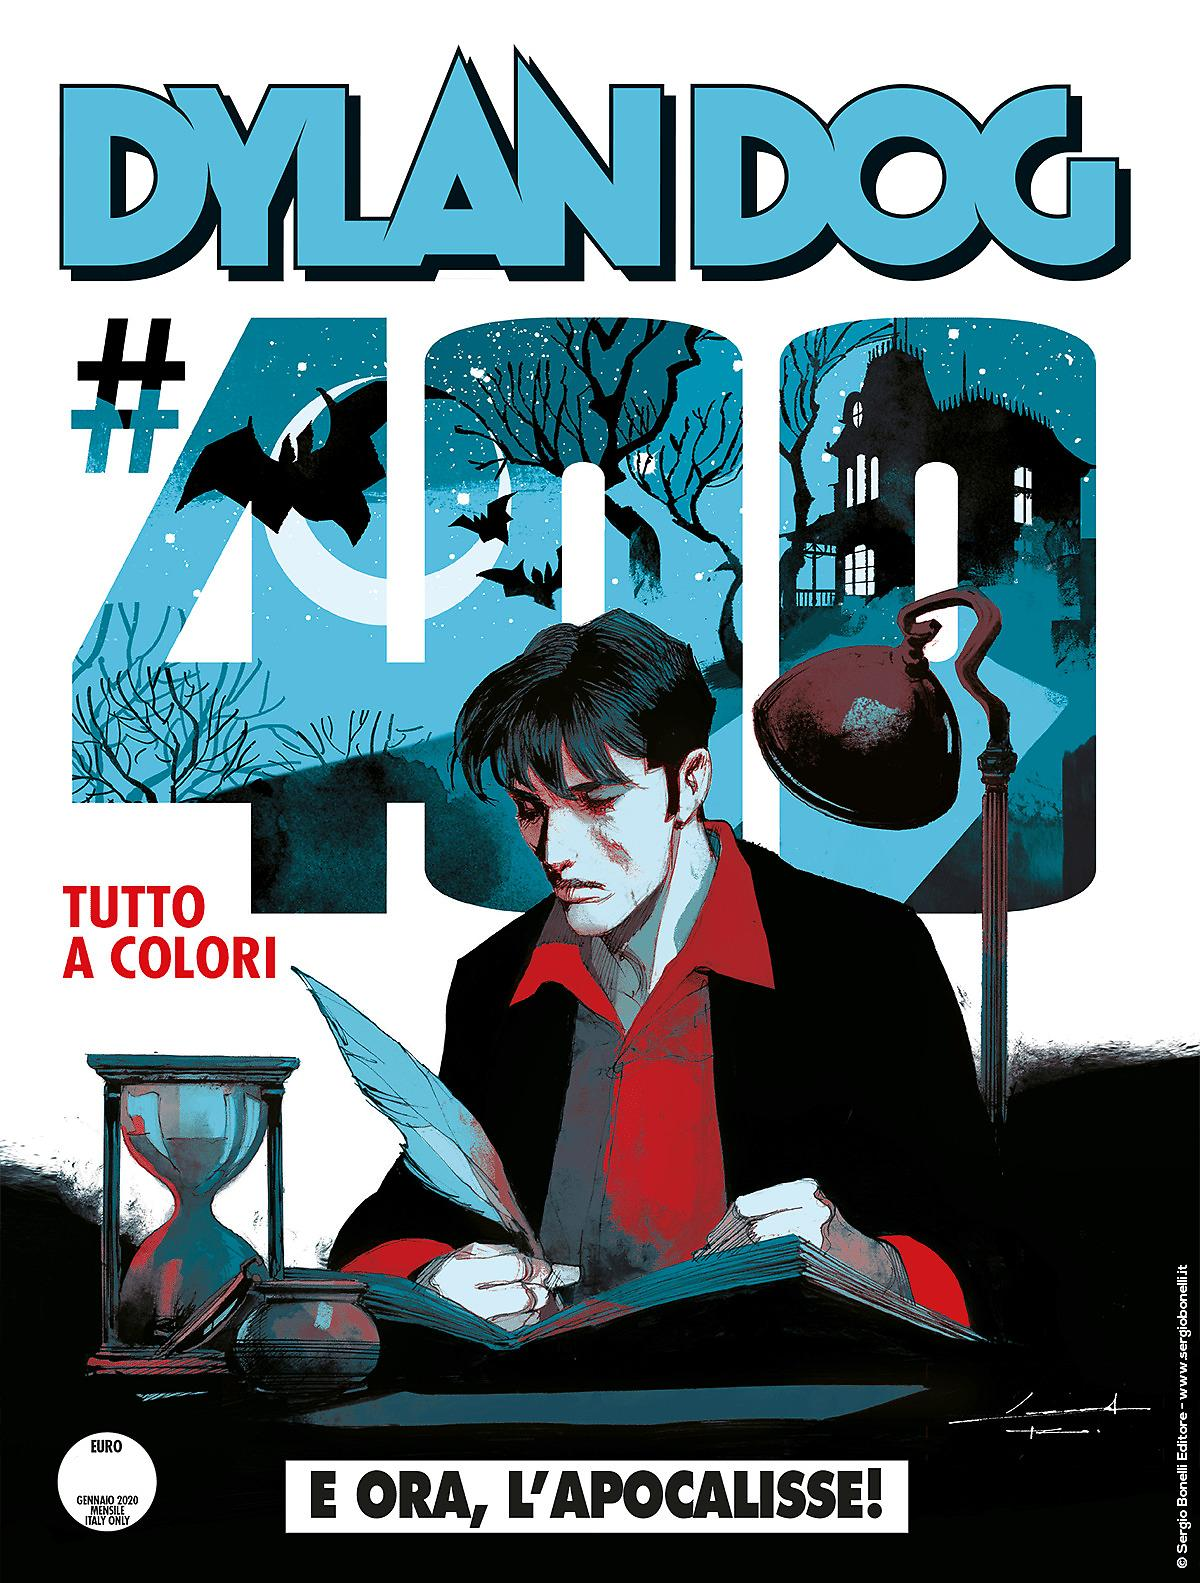 1575388030154.jpg--dylan dog  400 cover d   illustrata da corrado roi